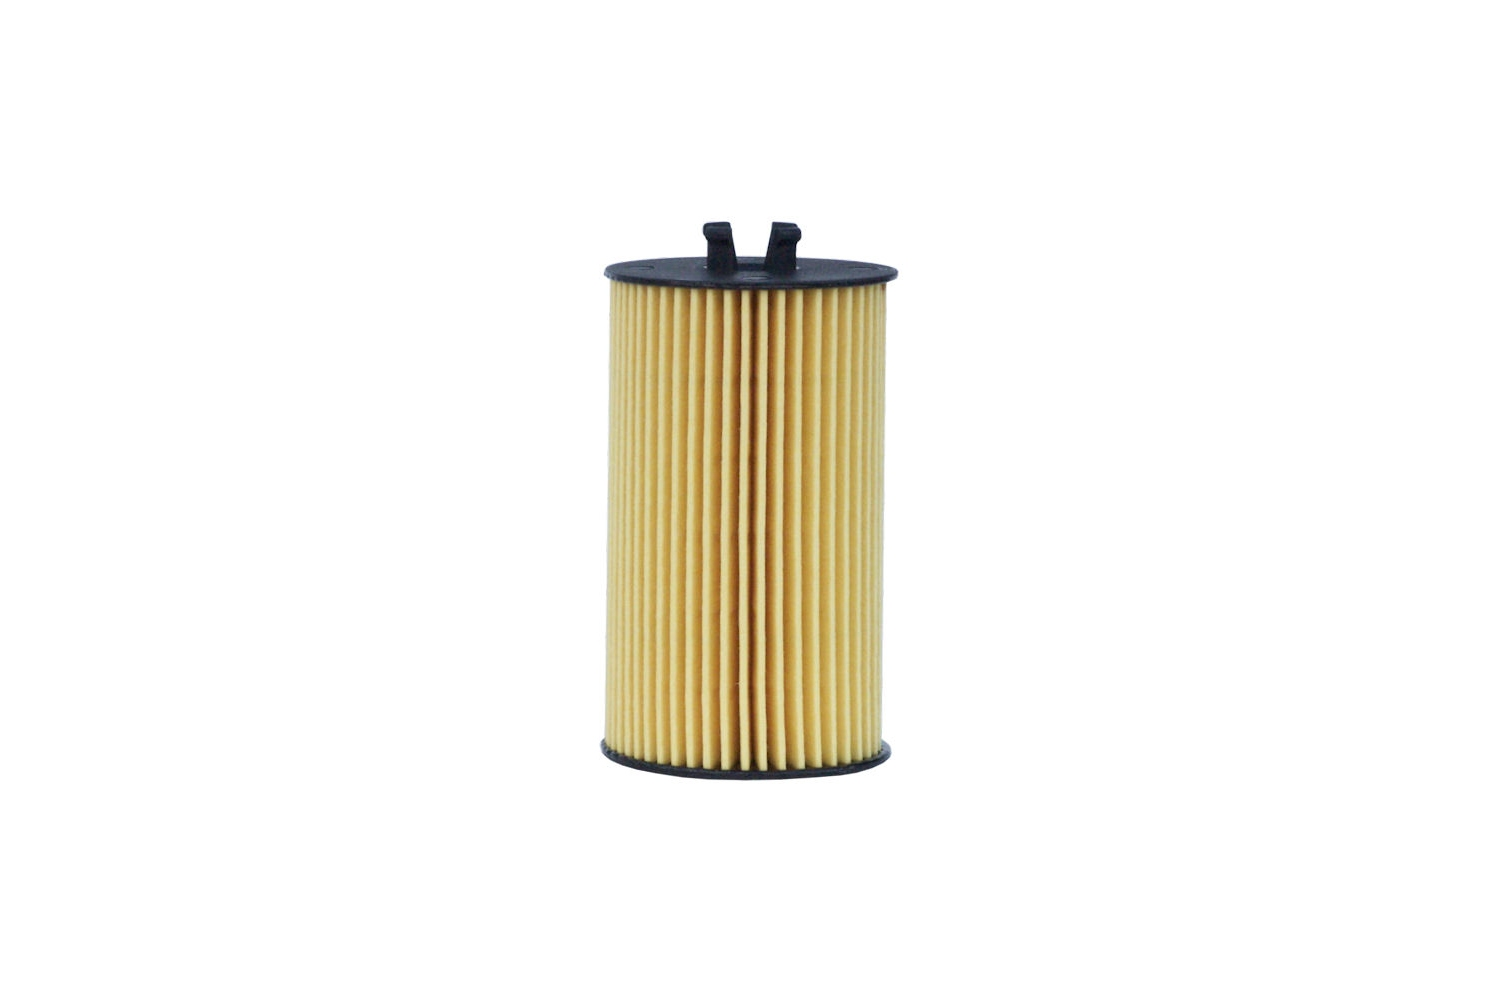 Acdelco Professional Engine Oil Filter Part Number Pf2257gf Baldwin Fuel Housing Durapack Pack Of 12